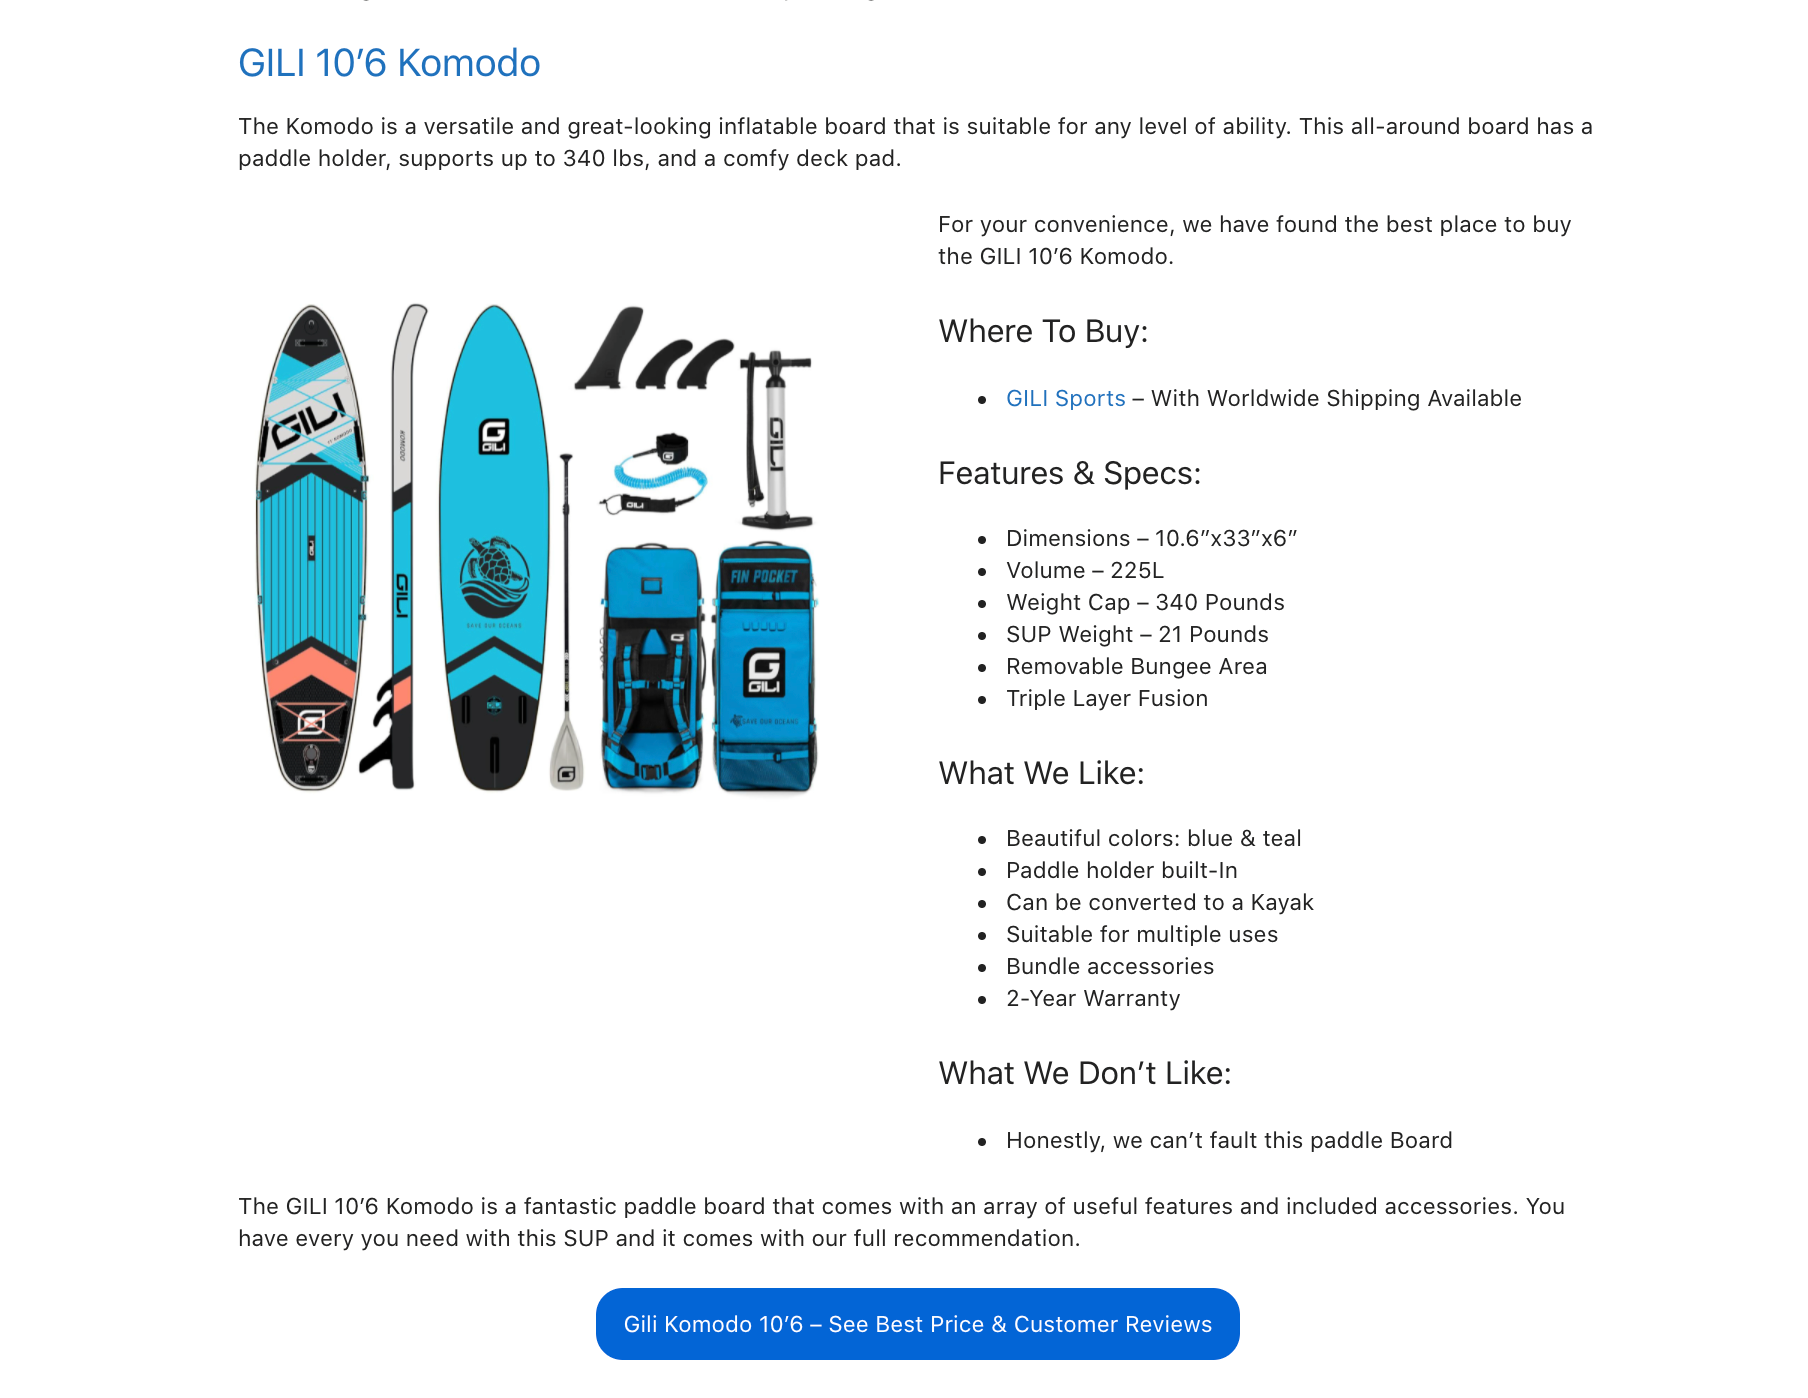 Guide to buying your first paddle board